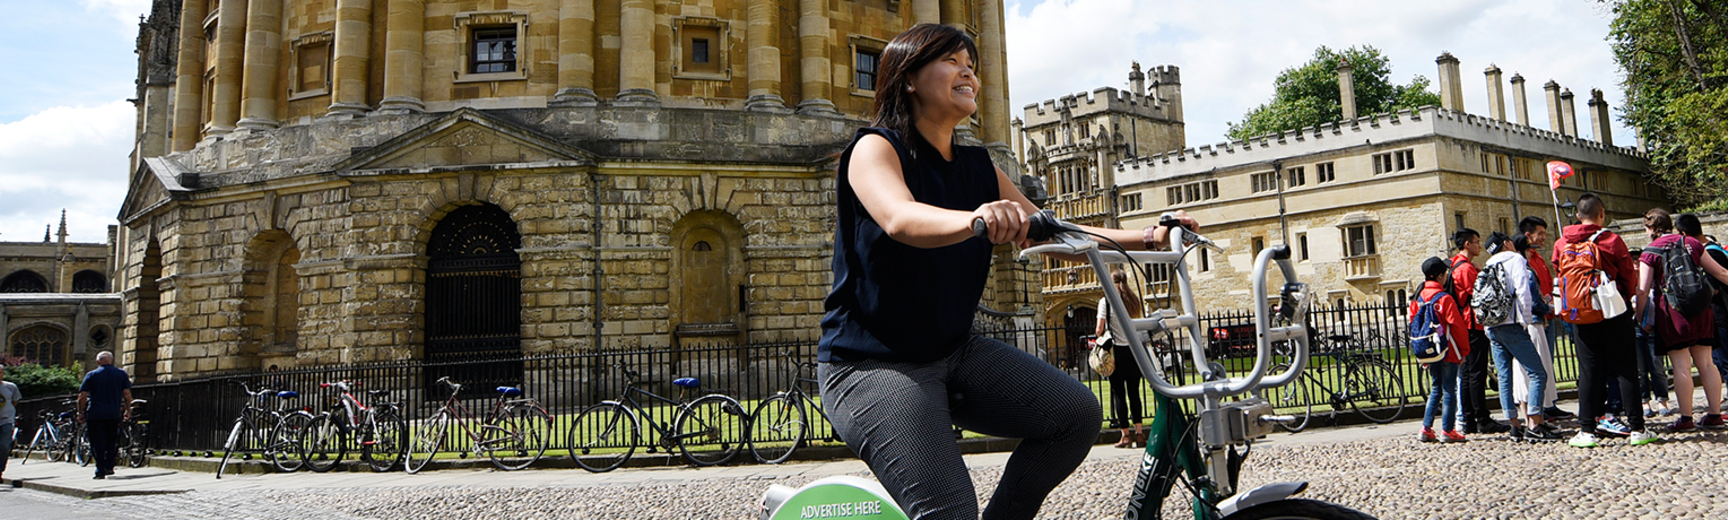 Image of cyclist riding around the Radcliffe camera